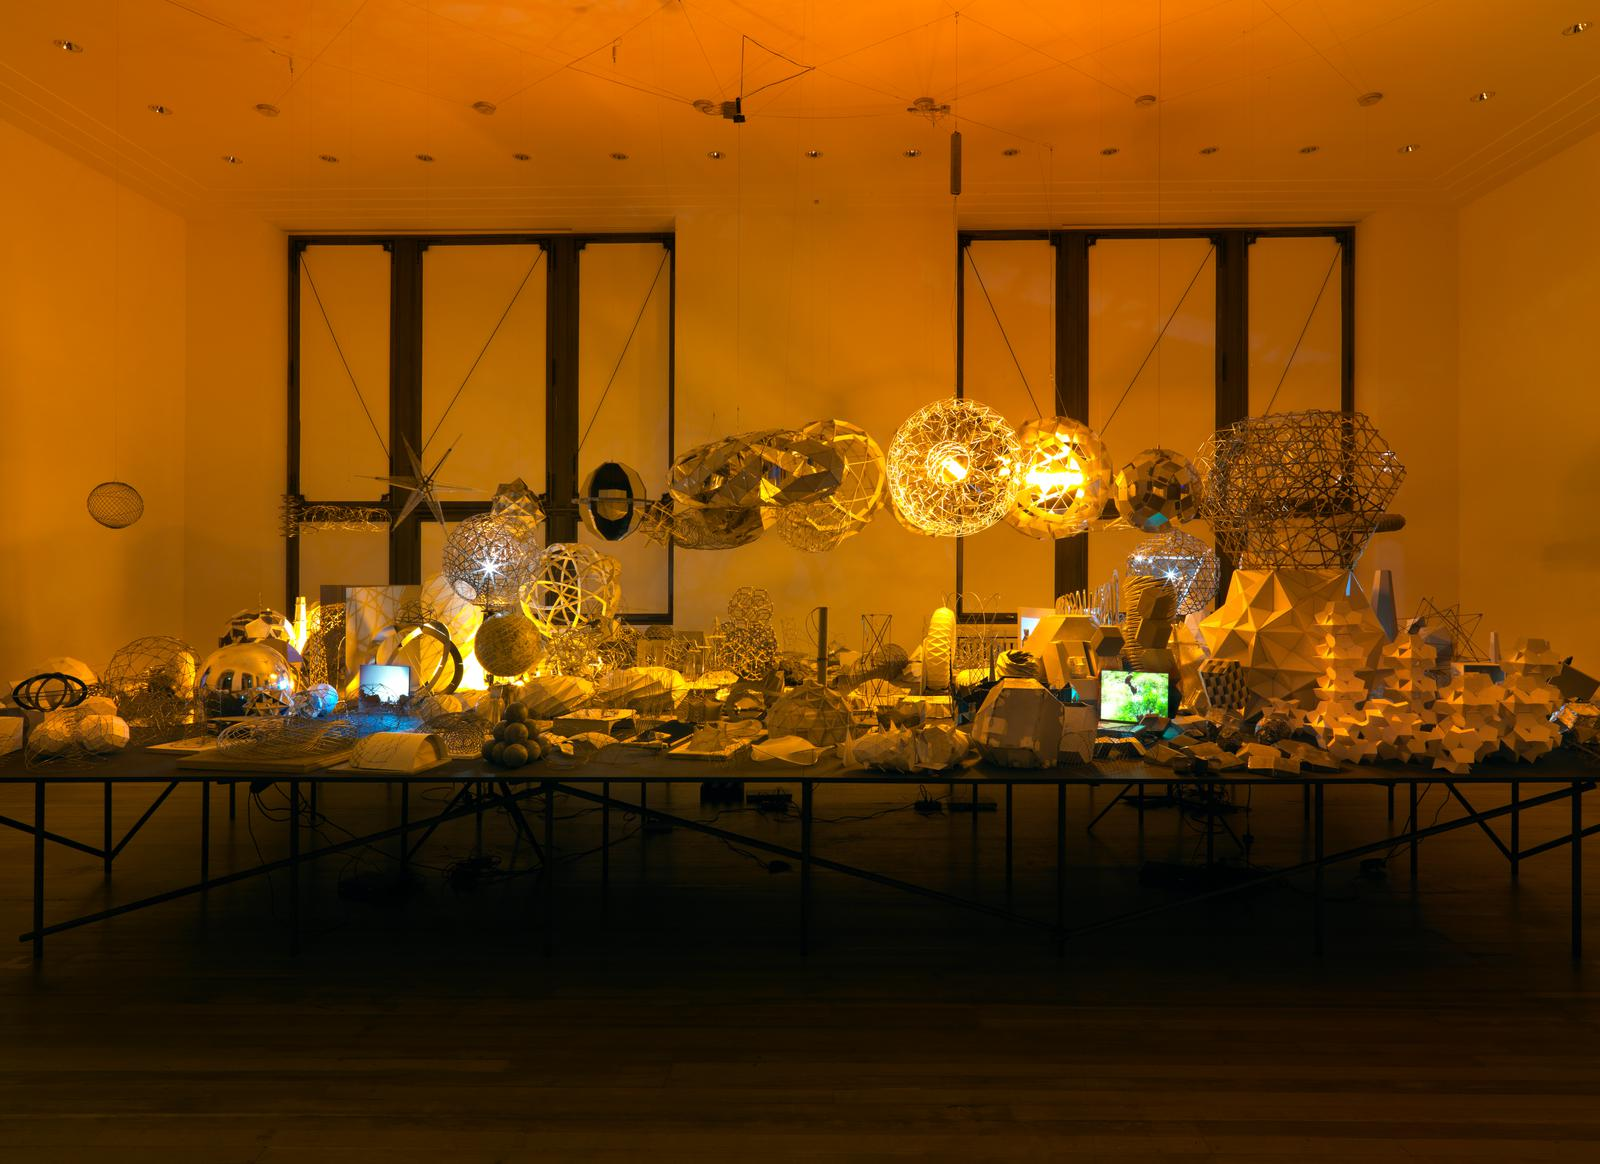 kitchen display portable mixers model room • artwork studio olafur eliasson